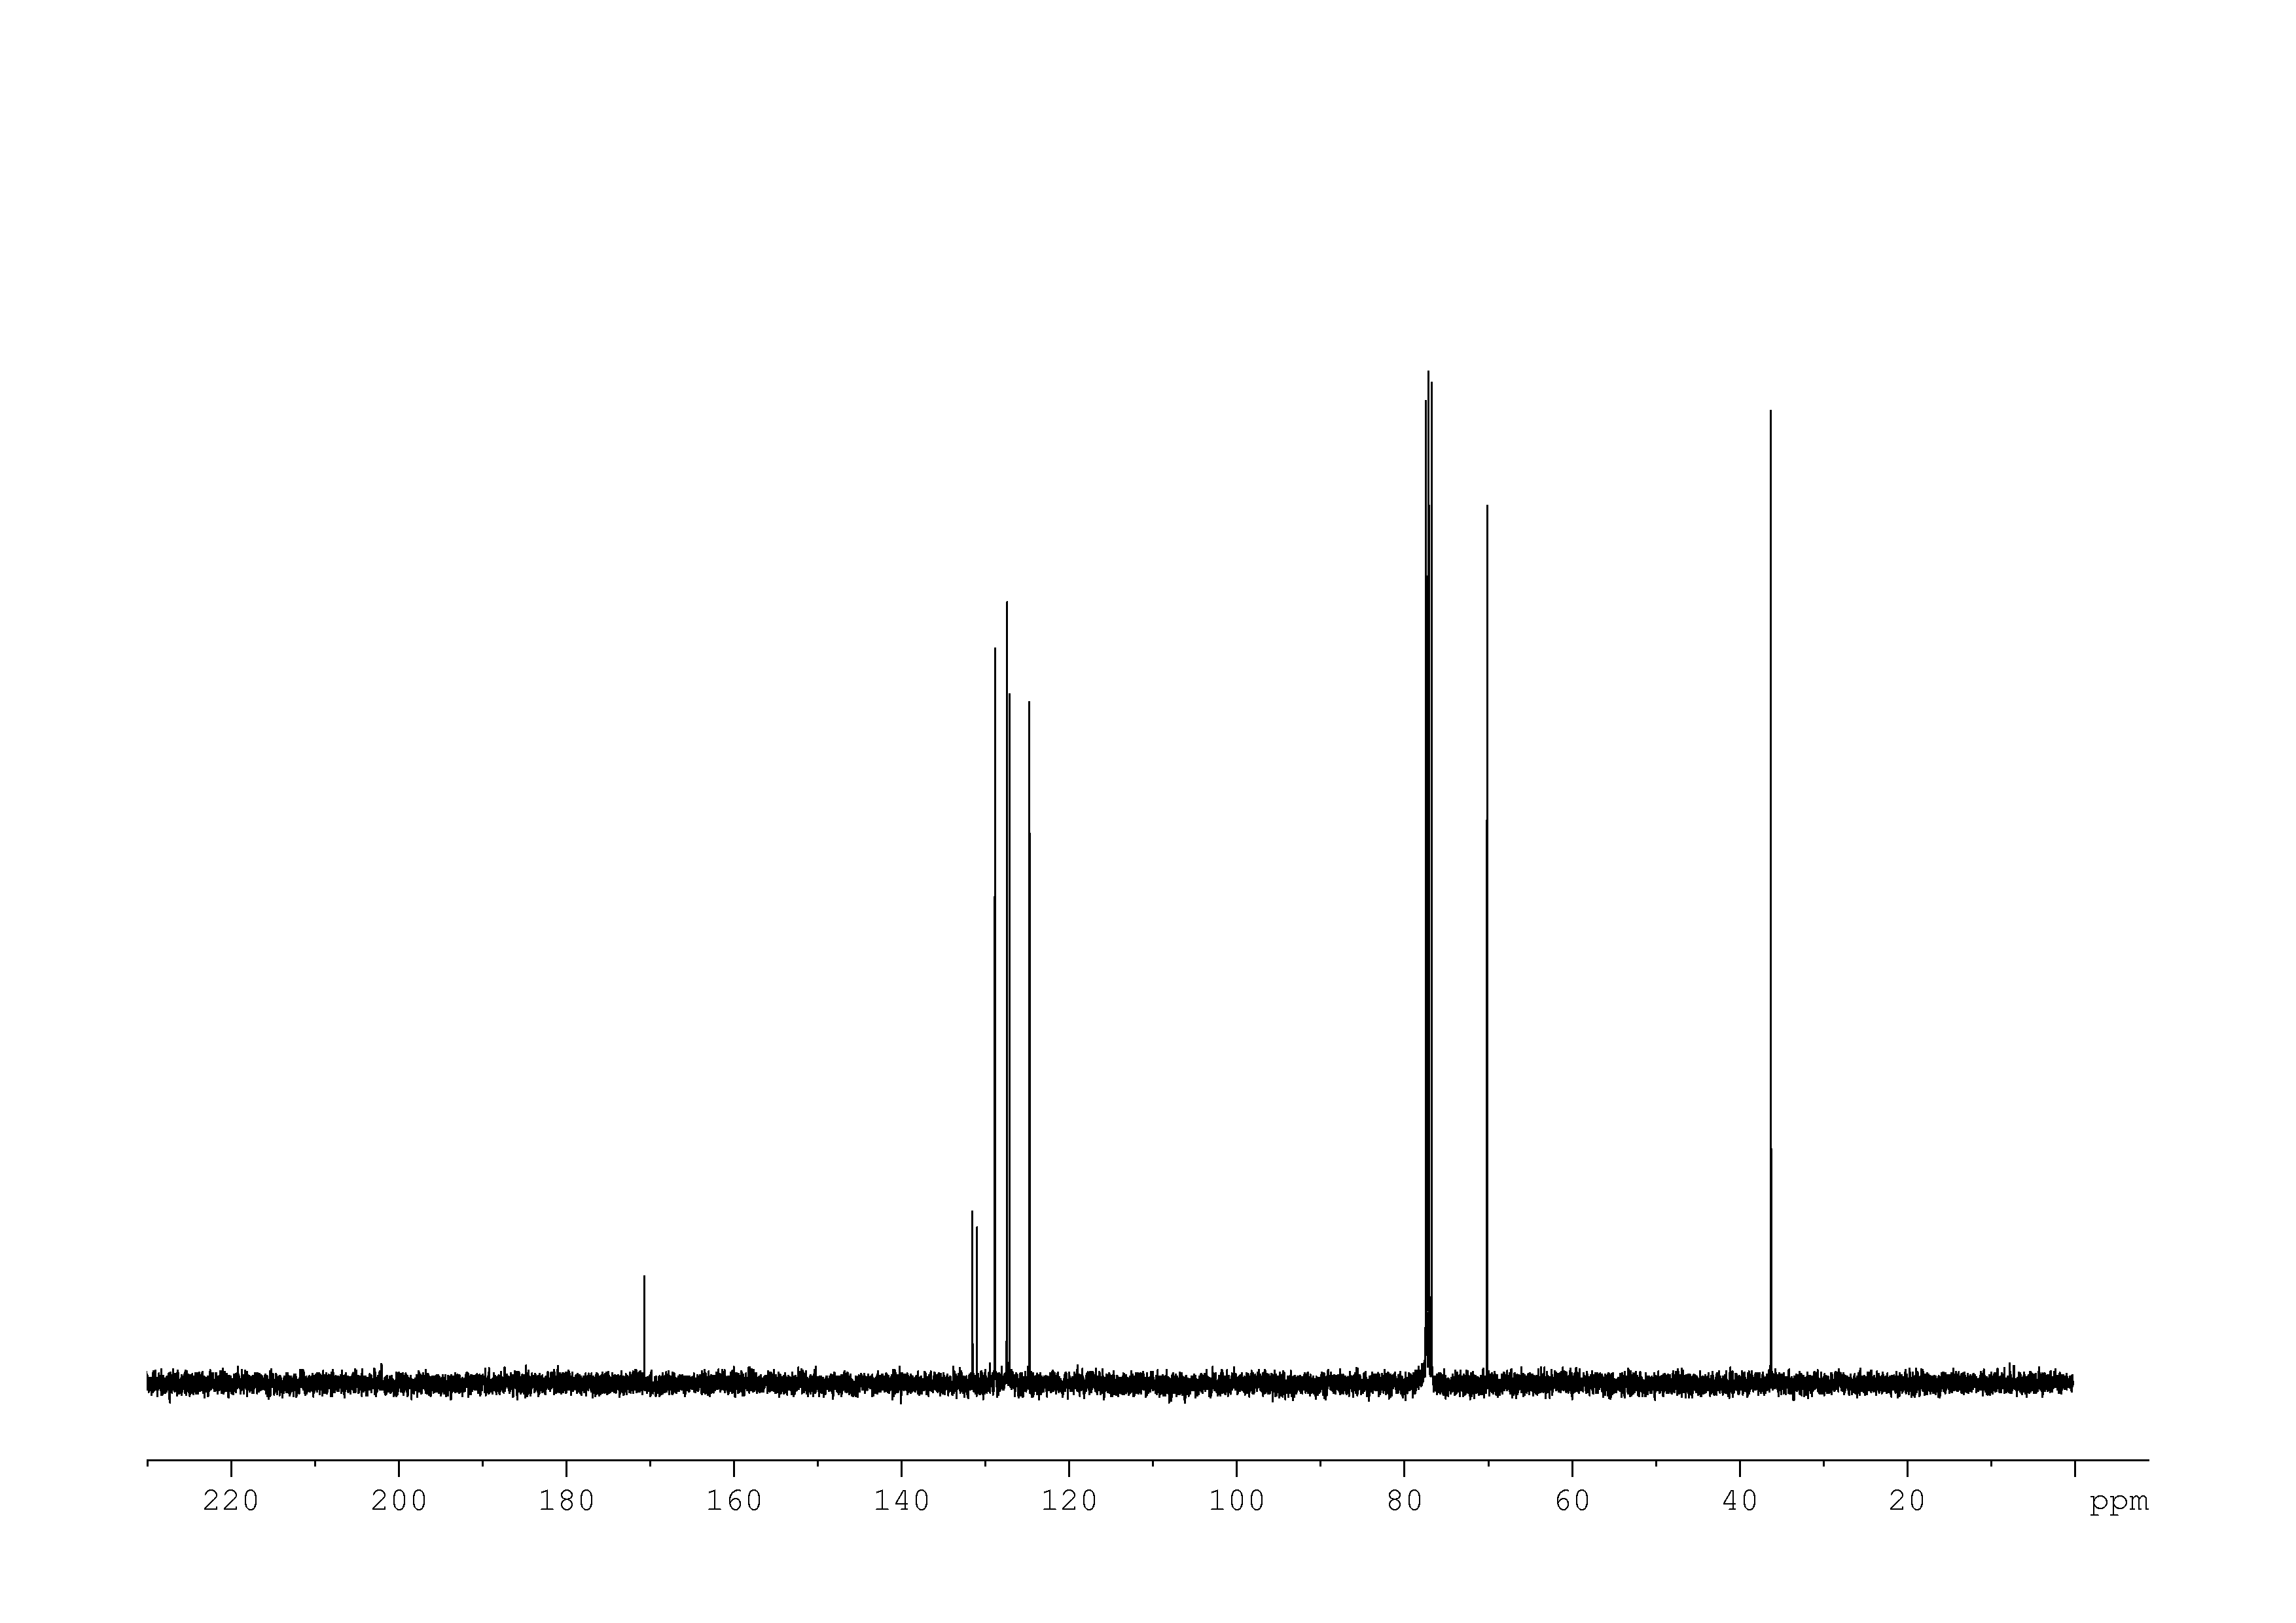 1D 13C, n/a spectrum for 3-isochromanone